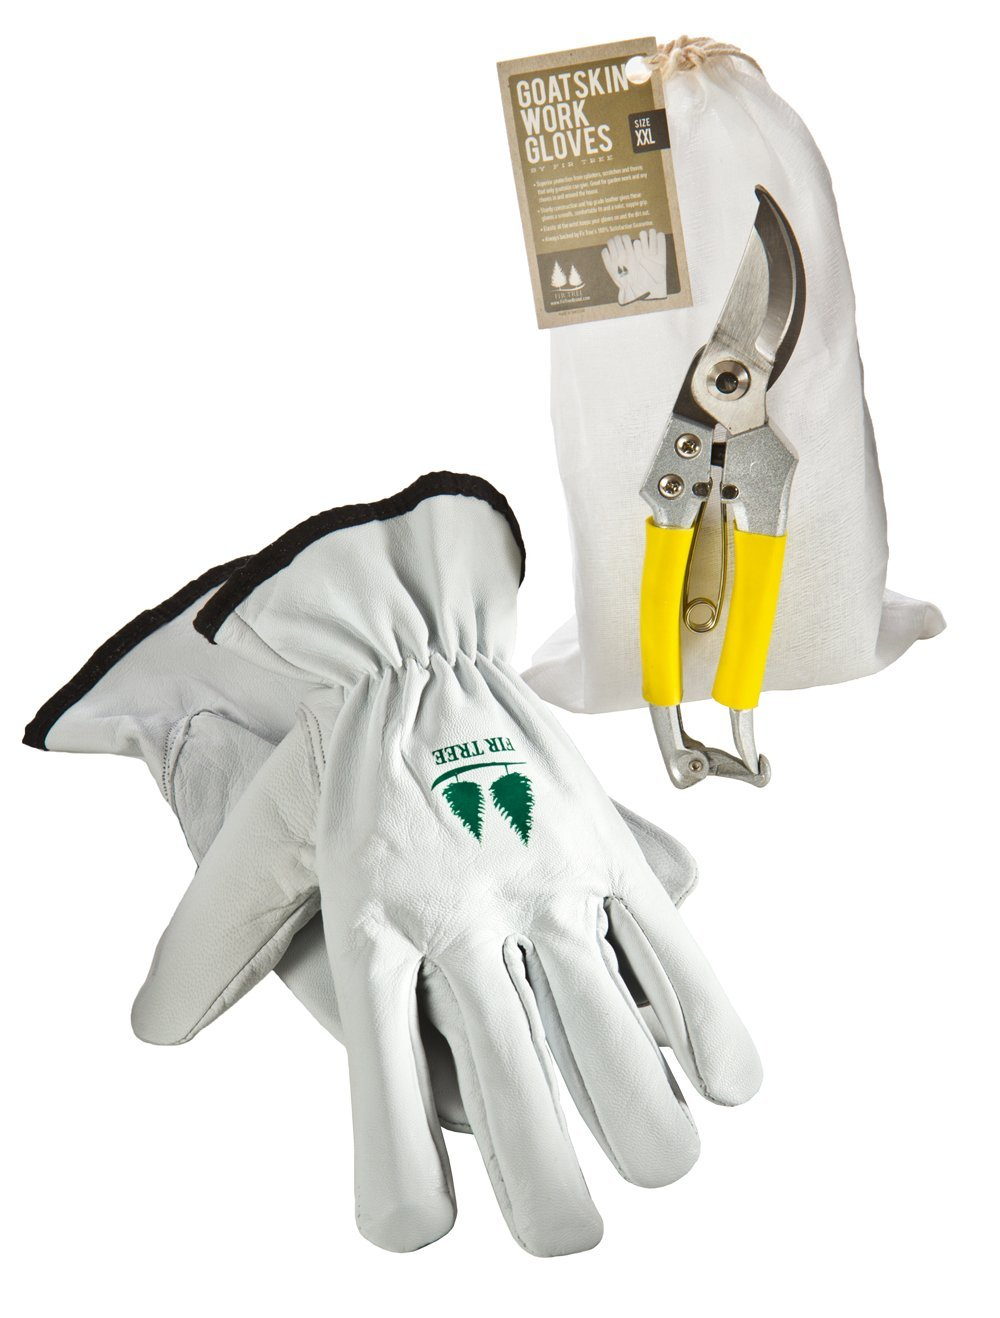 Gardening Tools Set by Fir Tree. Goatskin Leather Work Gloves and Stainless Steel Bypass Pruners.